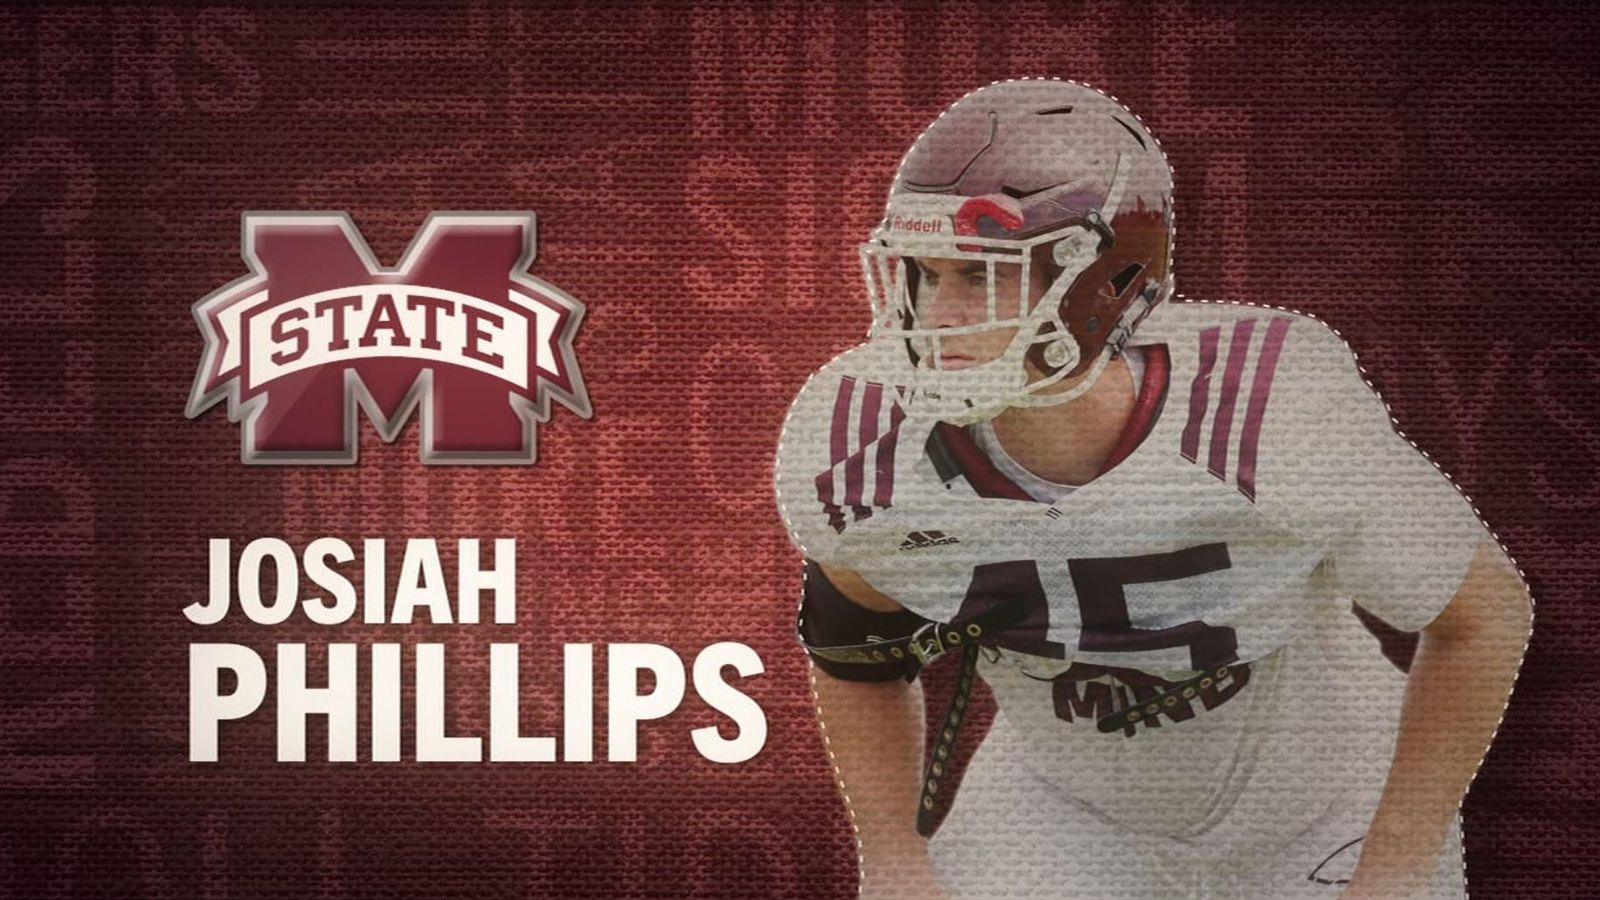 I am the SEC: Mississippi State's Josiah Phillips